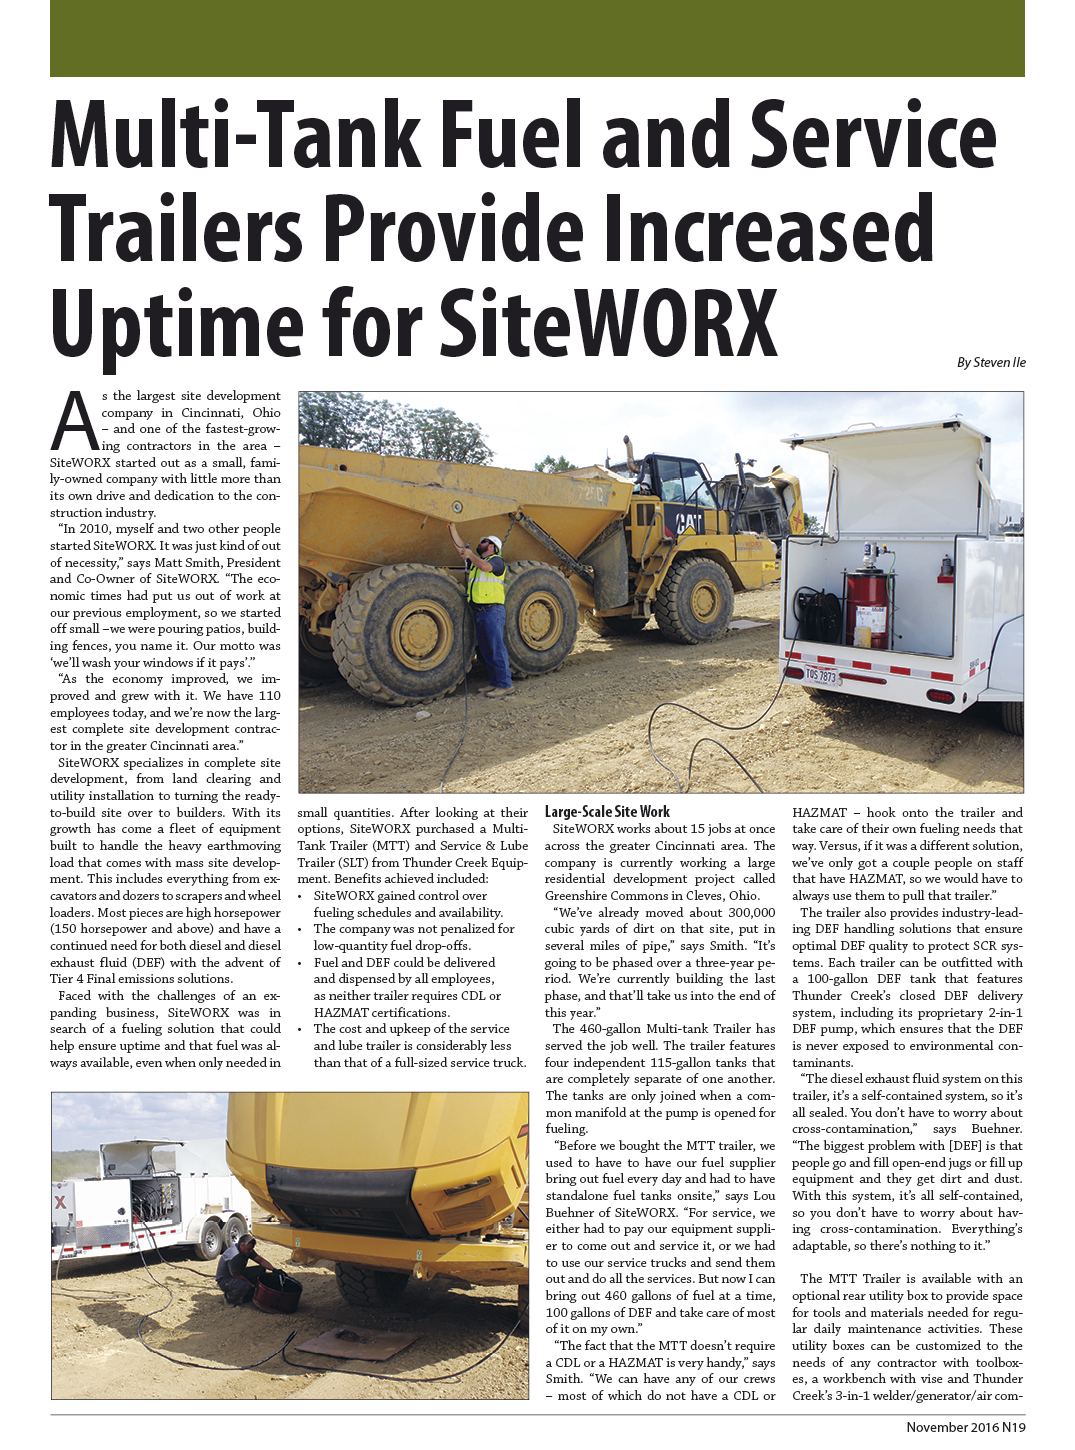 increased_uptime_siteworx